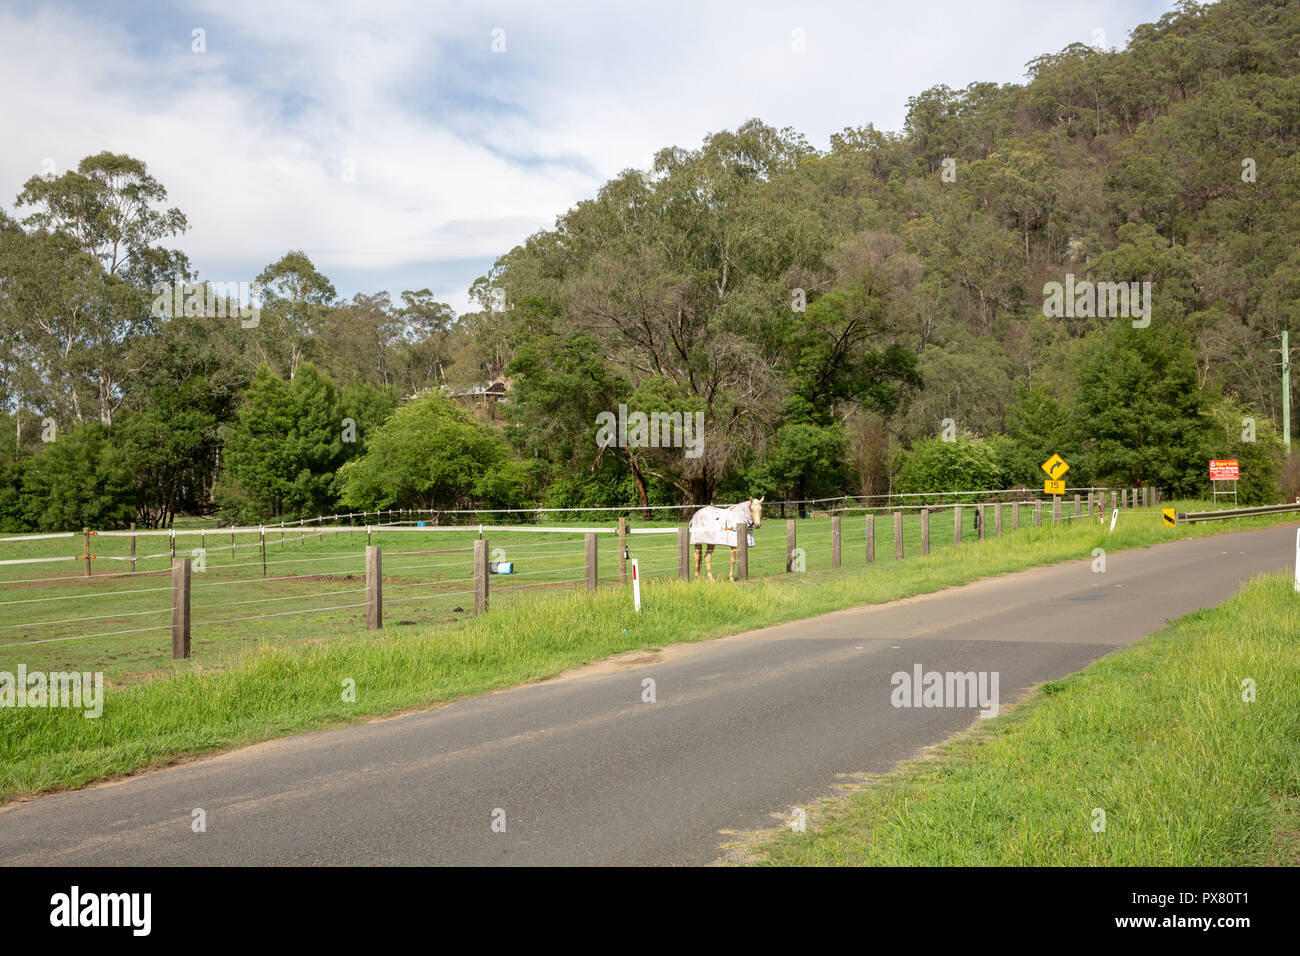 Countryside around the Colo River in New South Wales,Australia - Stock Image